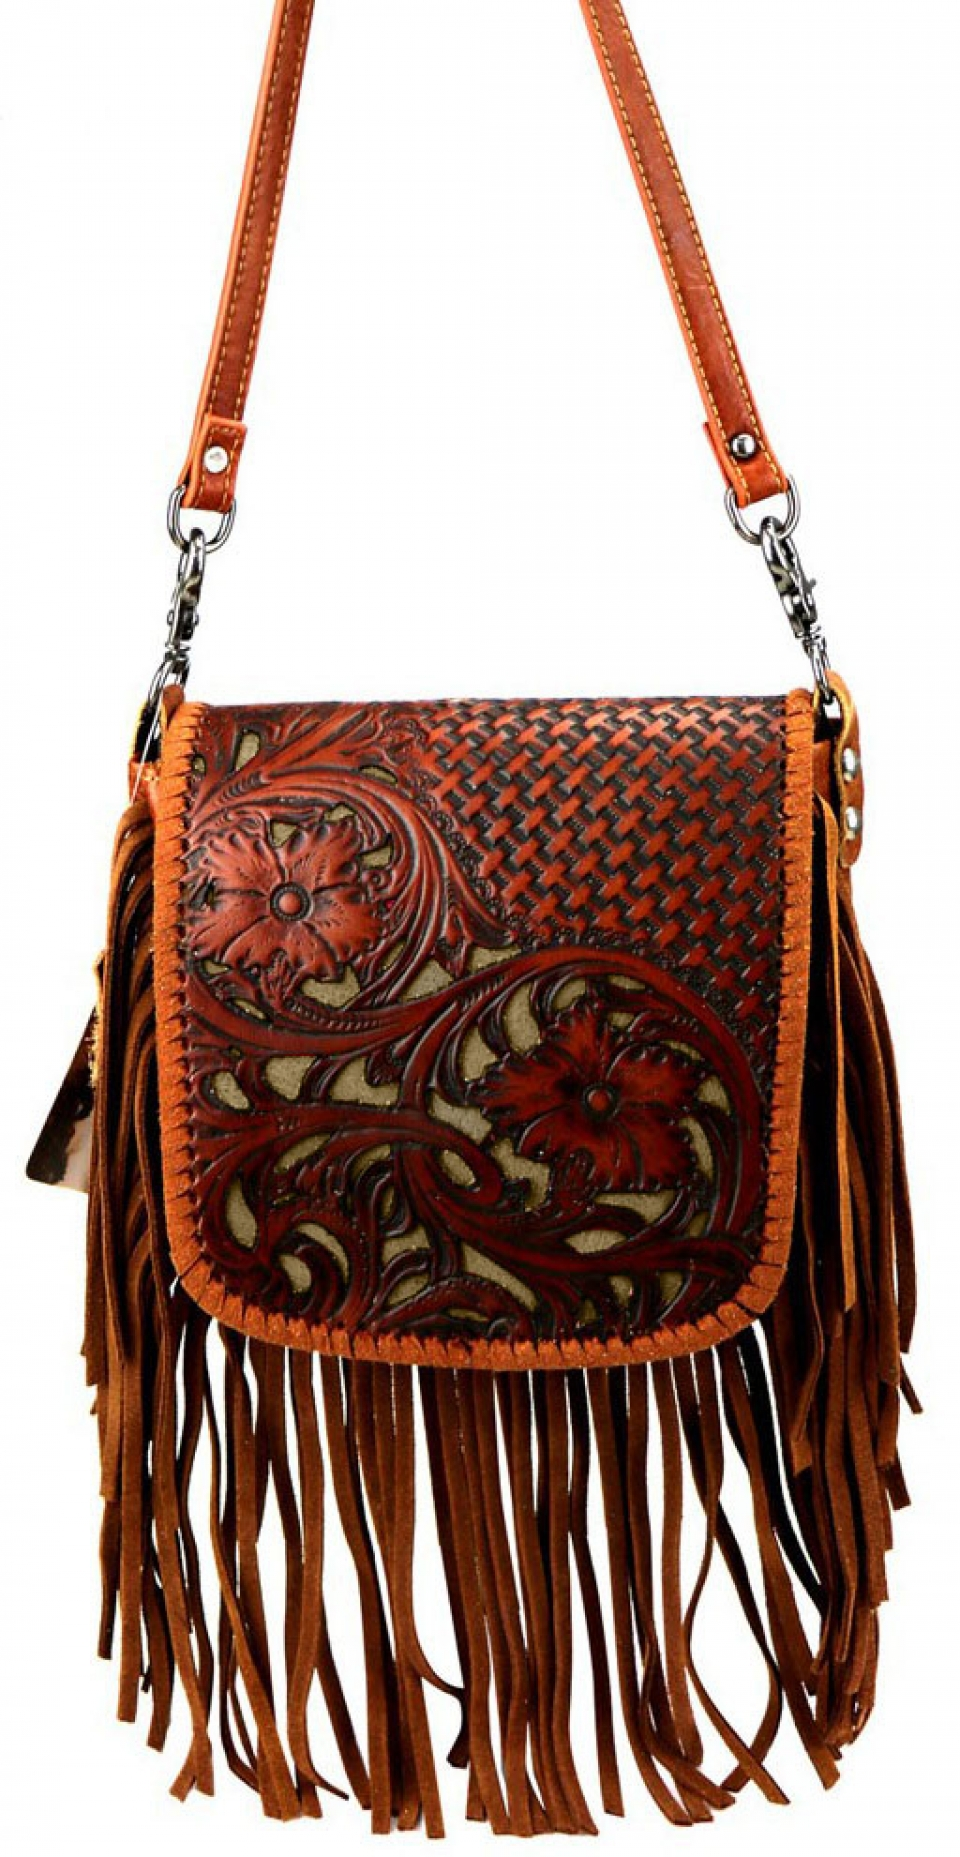 Inlay Tooled Leather Purse